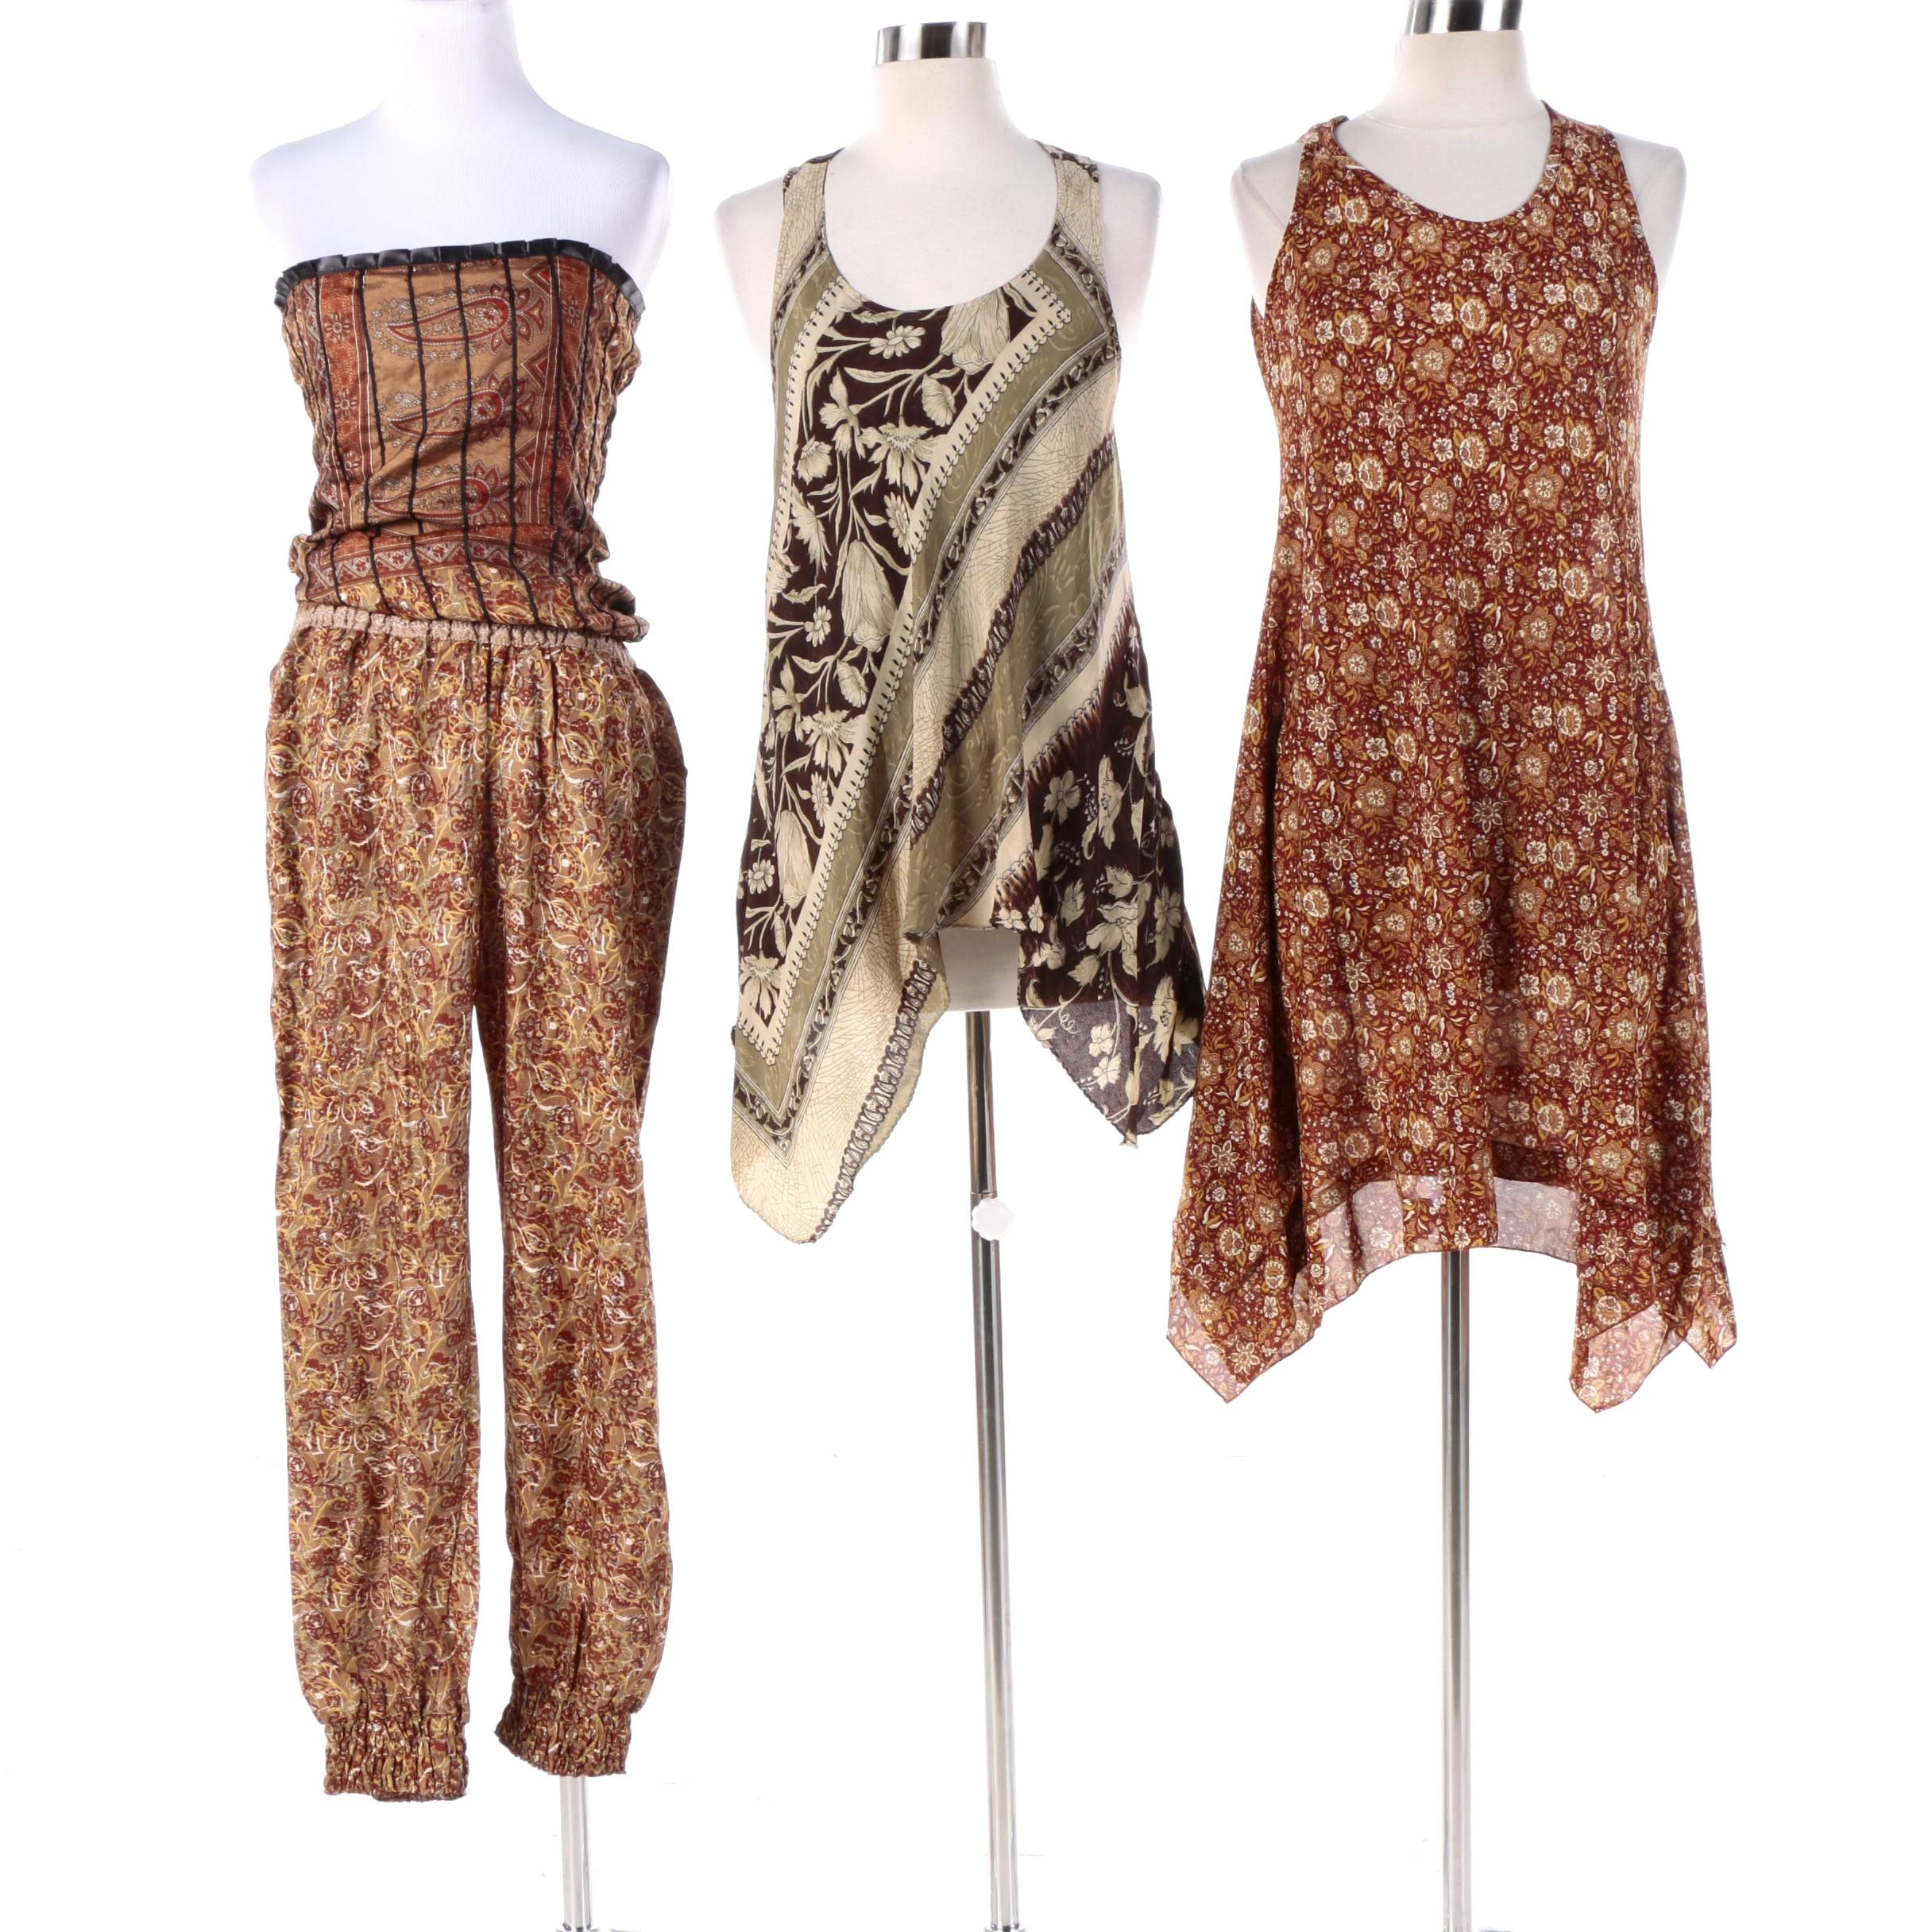 Aller Simplement Tunic Top, Dress and Jumpsuit Made From Upcycled Vintage Saris